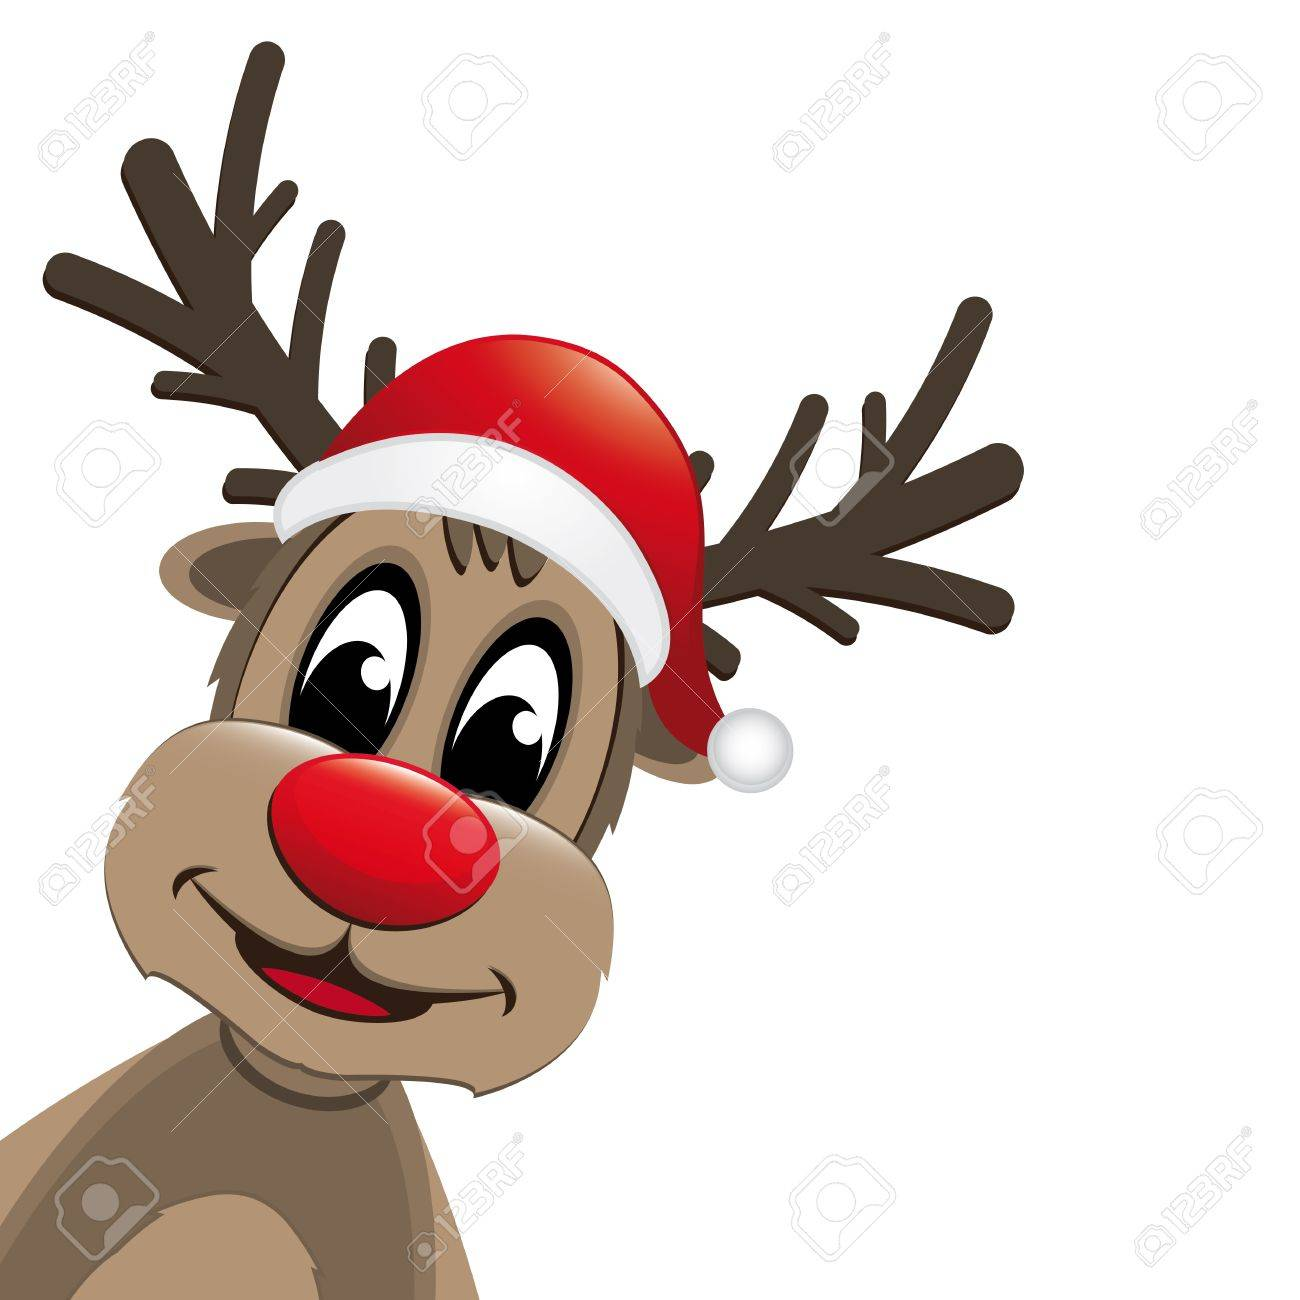 rudolph reindeer red nose and santa claus hat royalty free cliparts